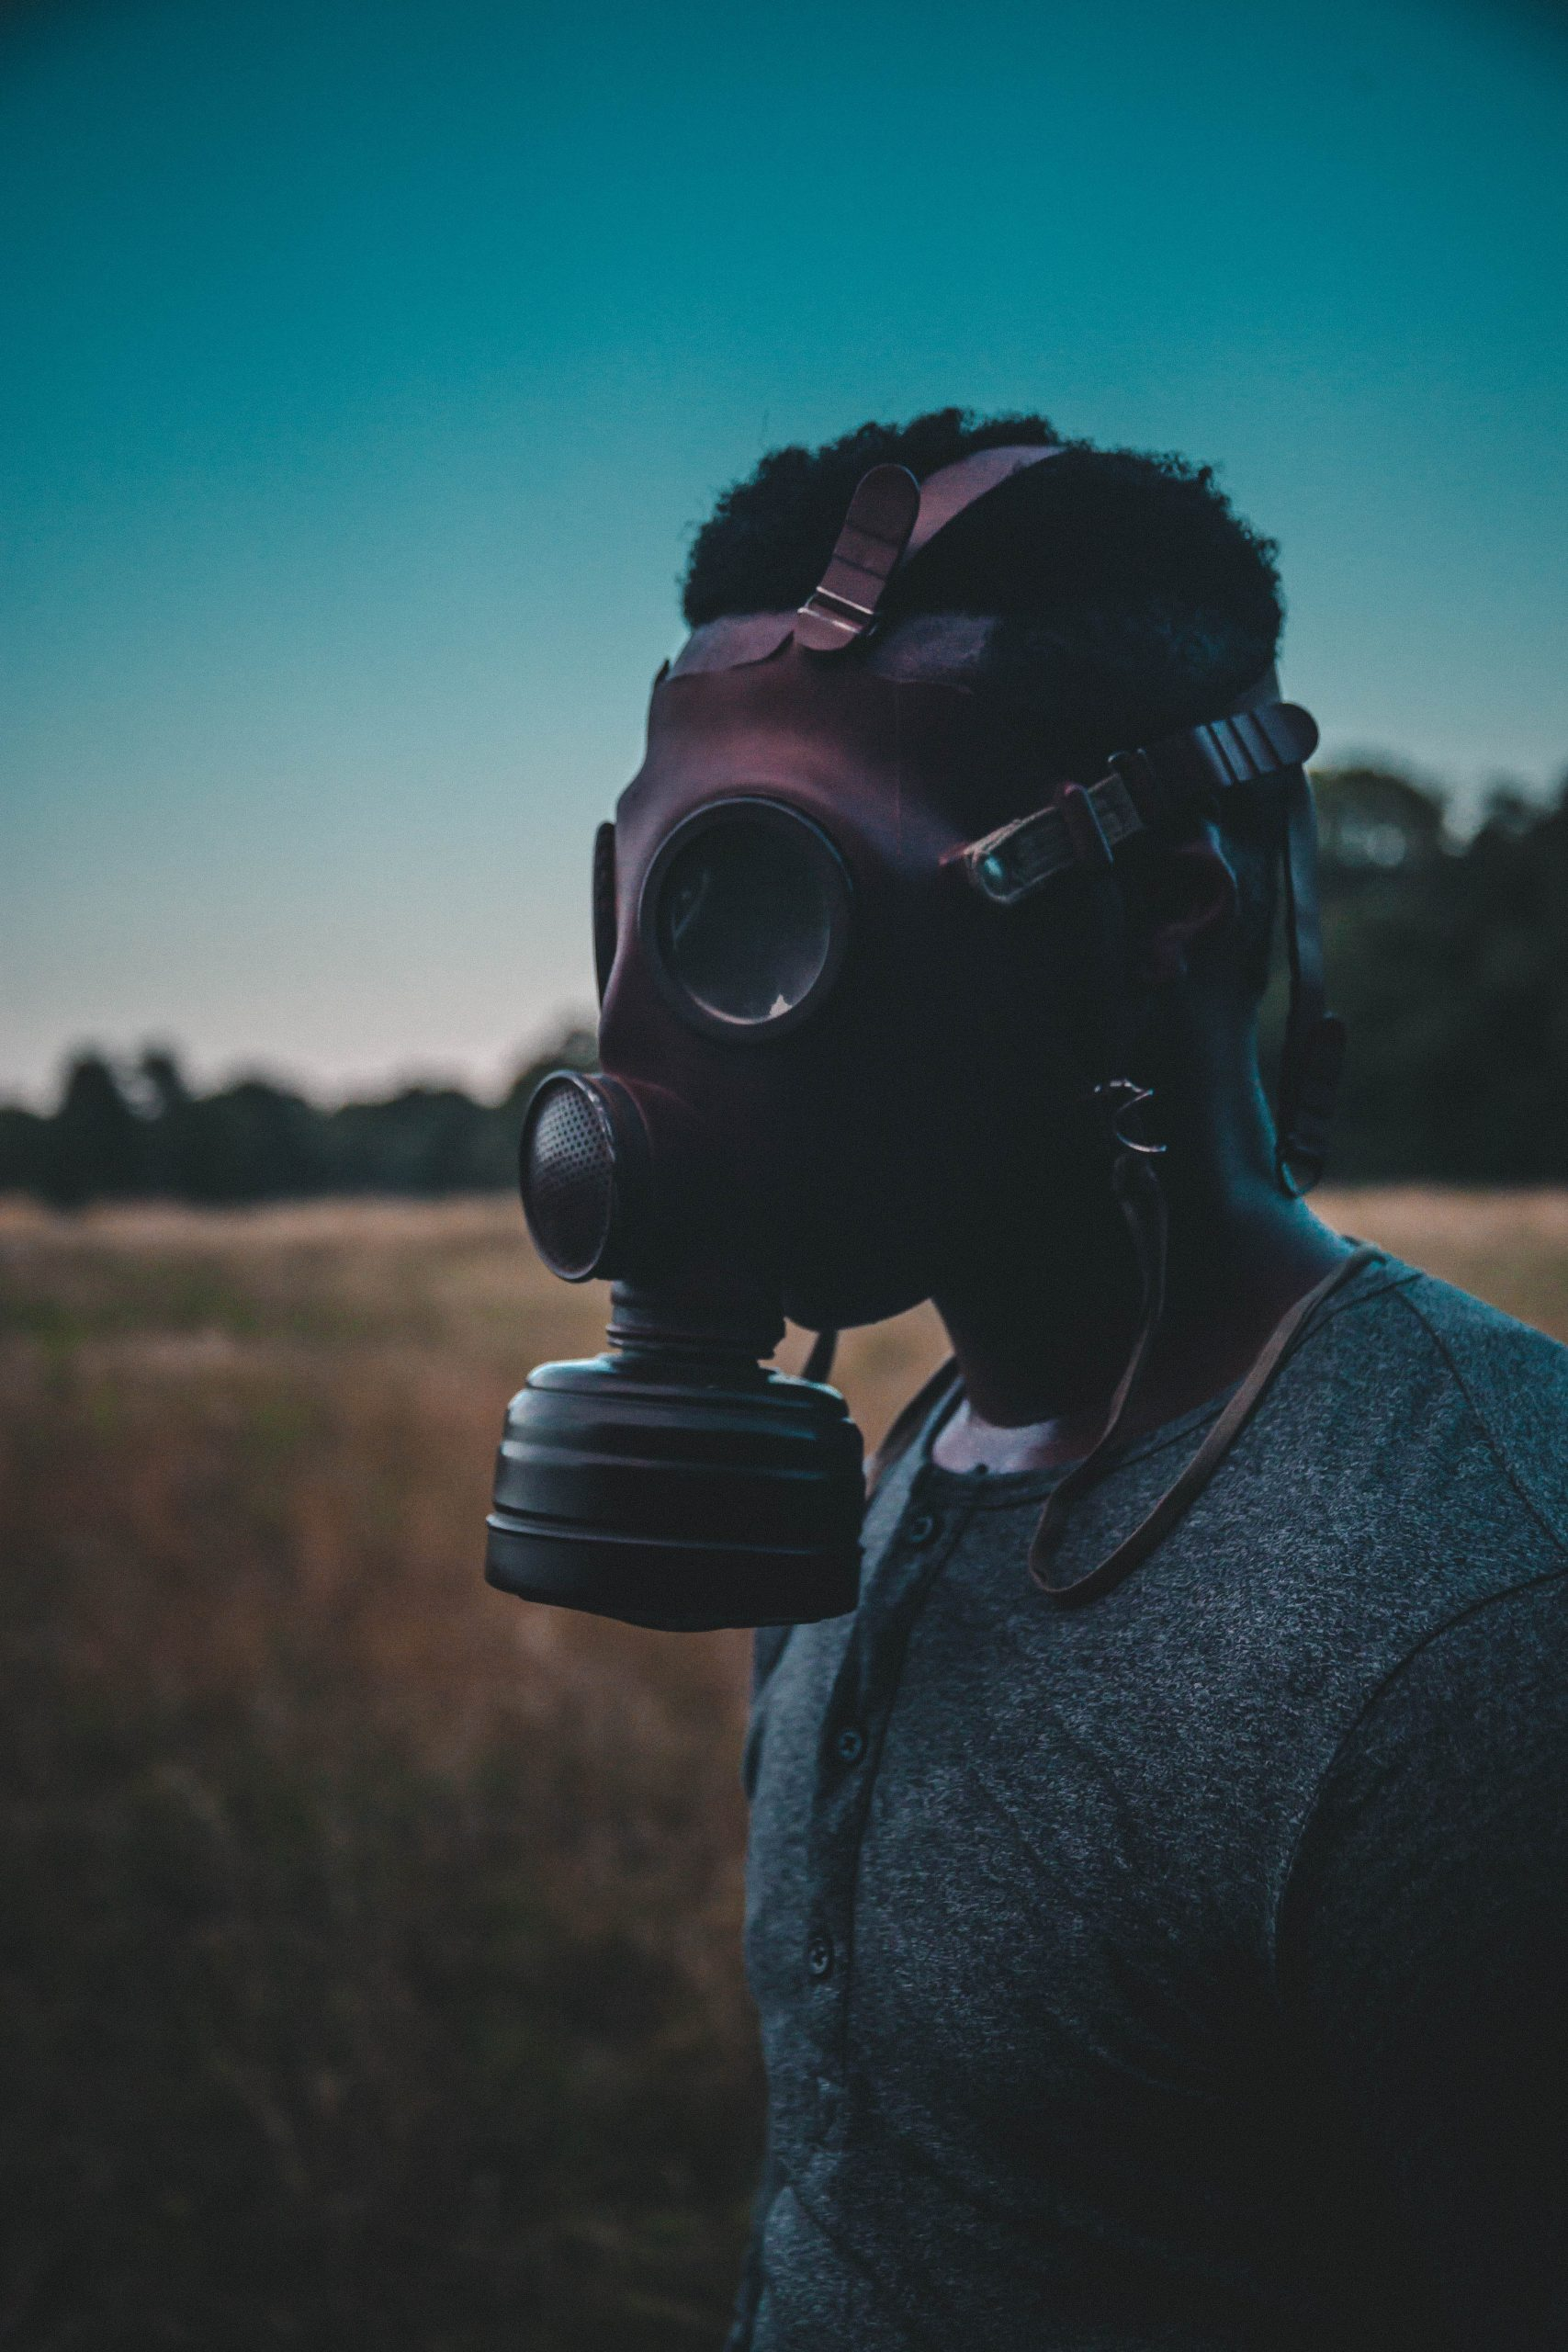 How to deal with toxic people?